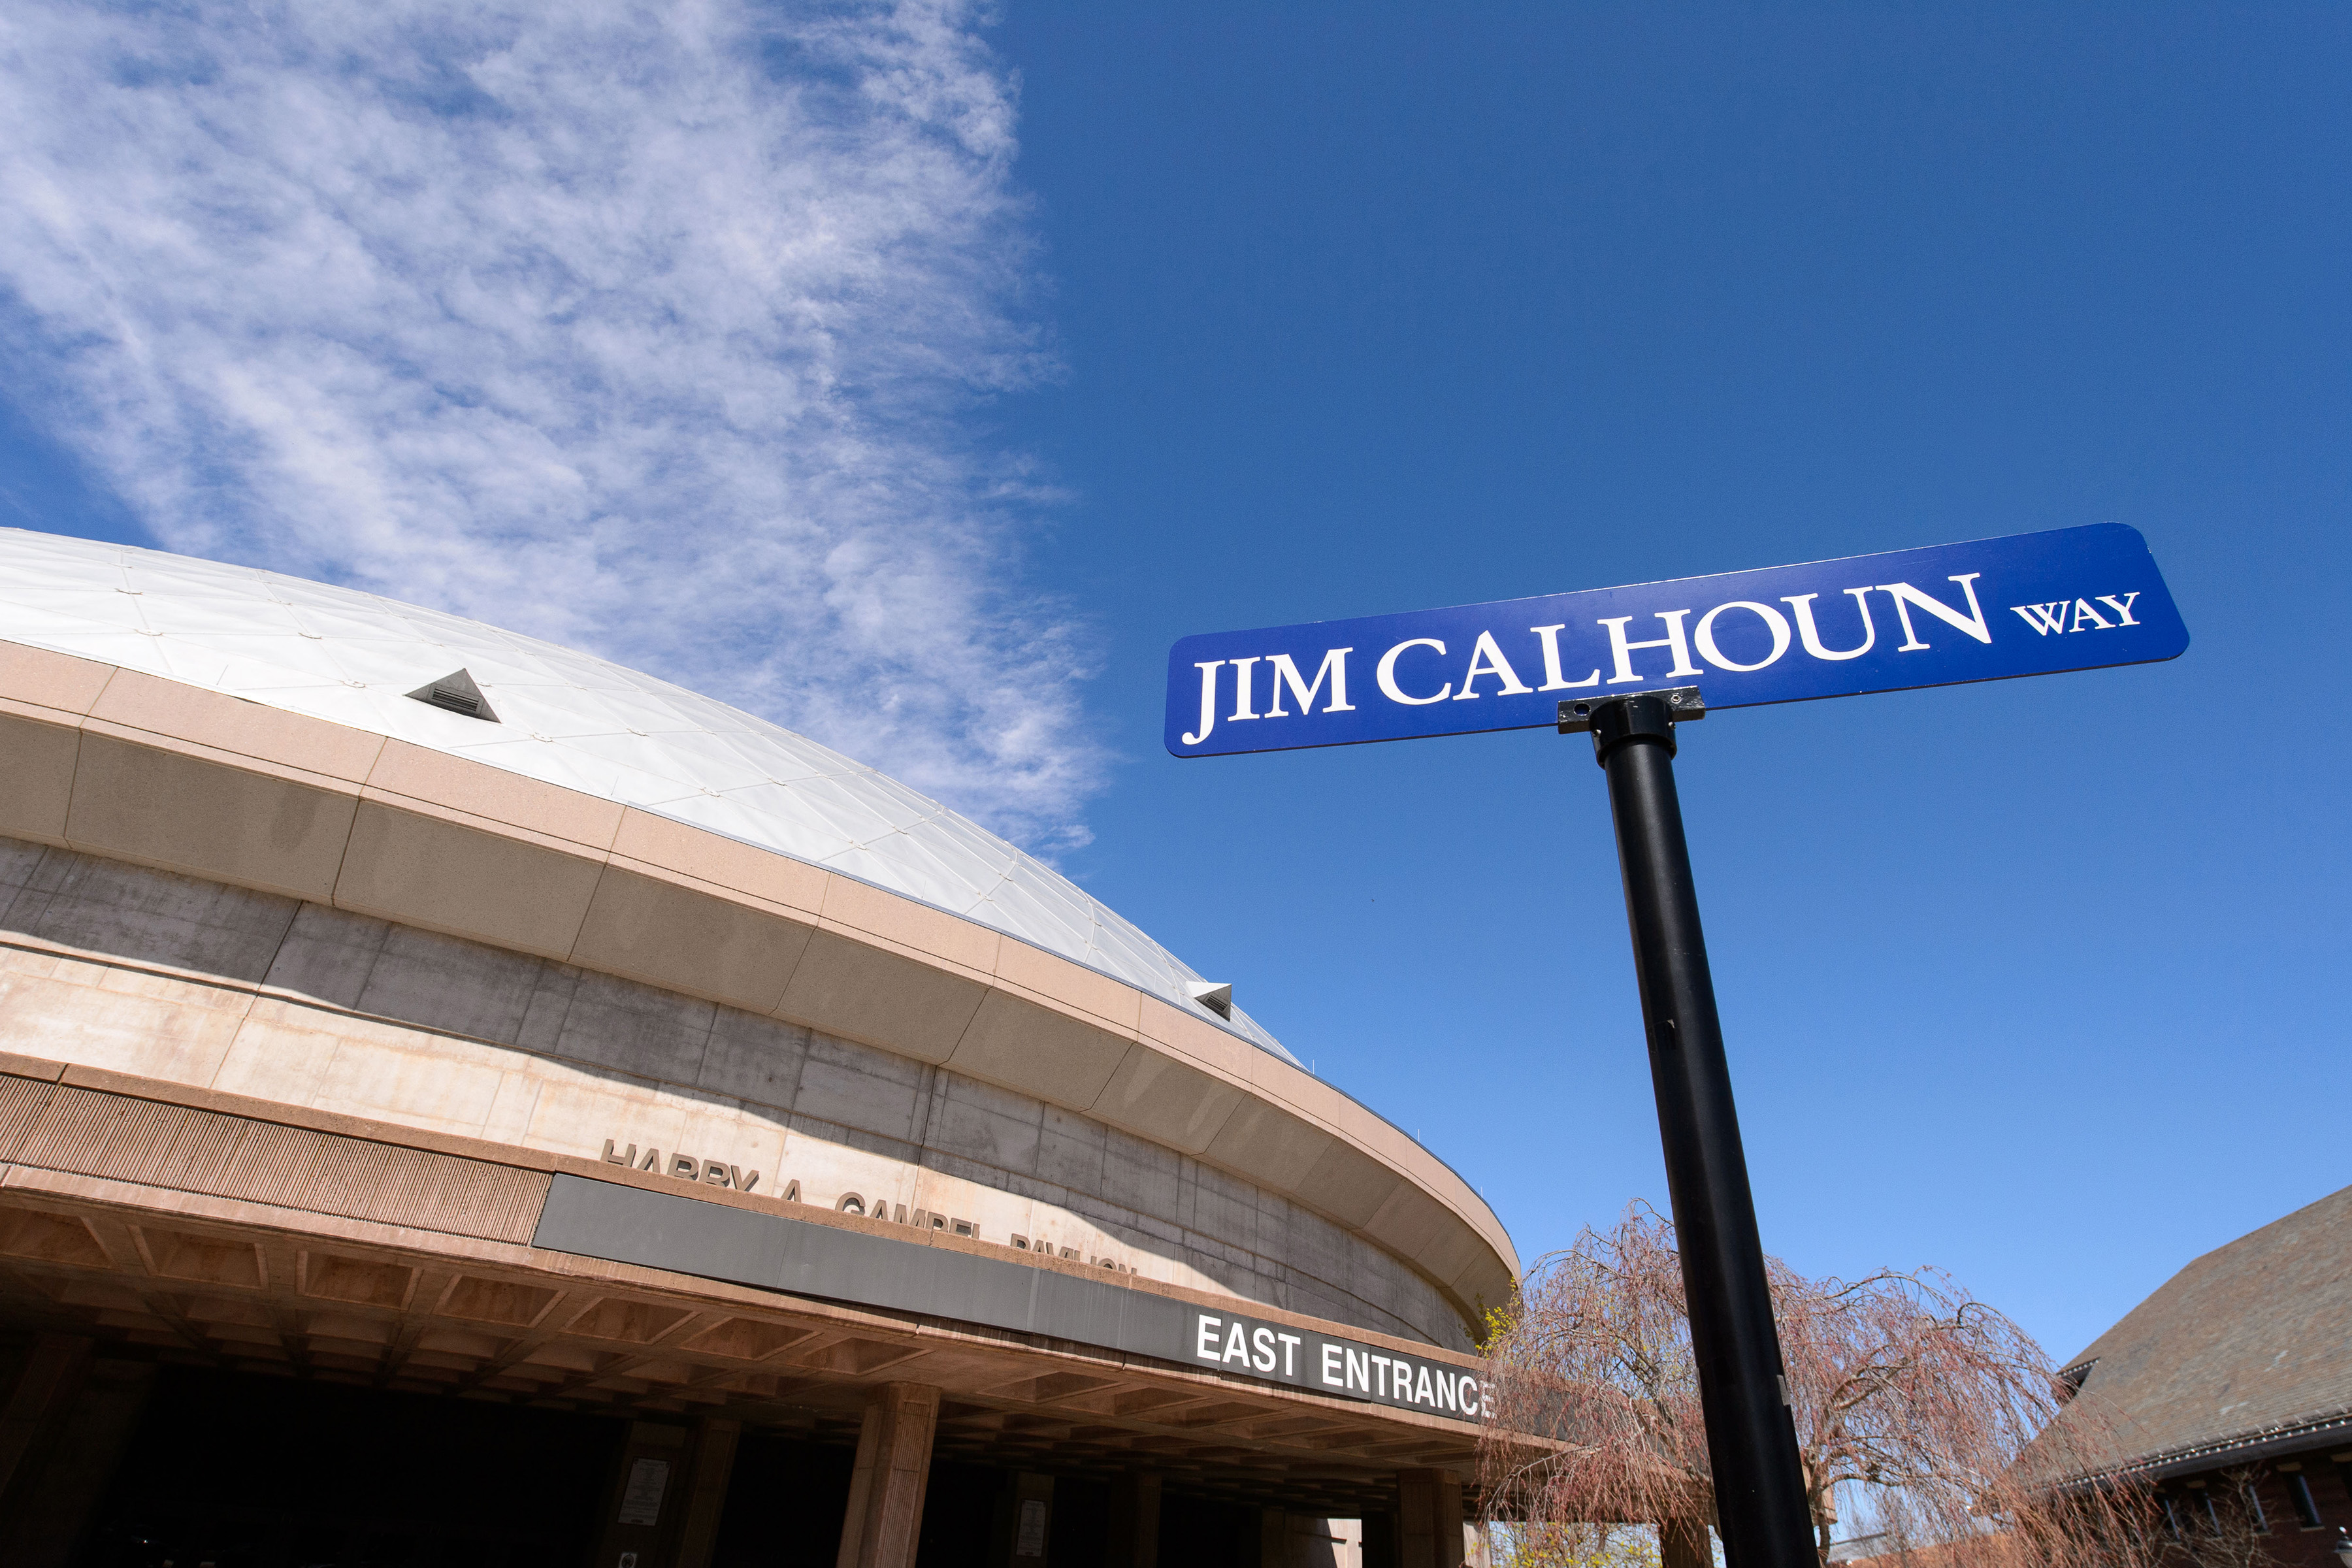 A view of Gampel Pavilion and the Jim Calhoun Way sign on April 29, 2015. (Peter Morenus/UConn Photo)